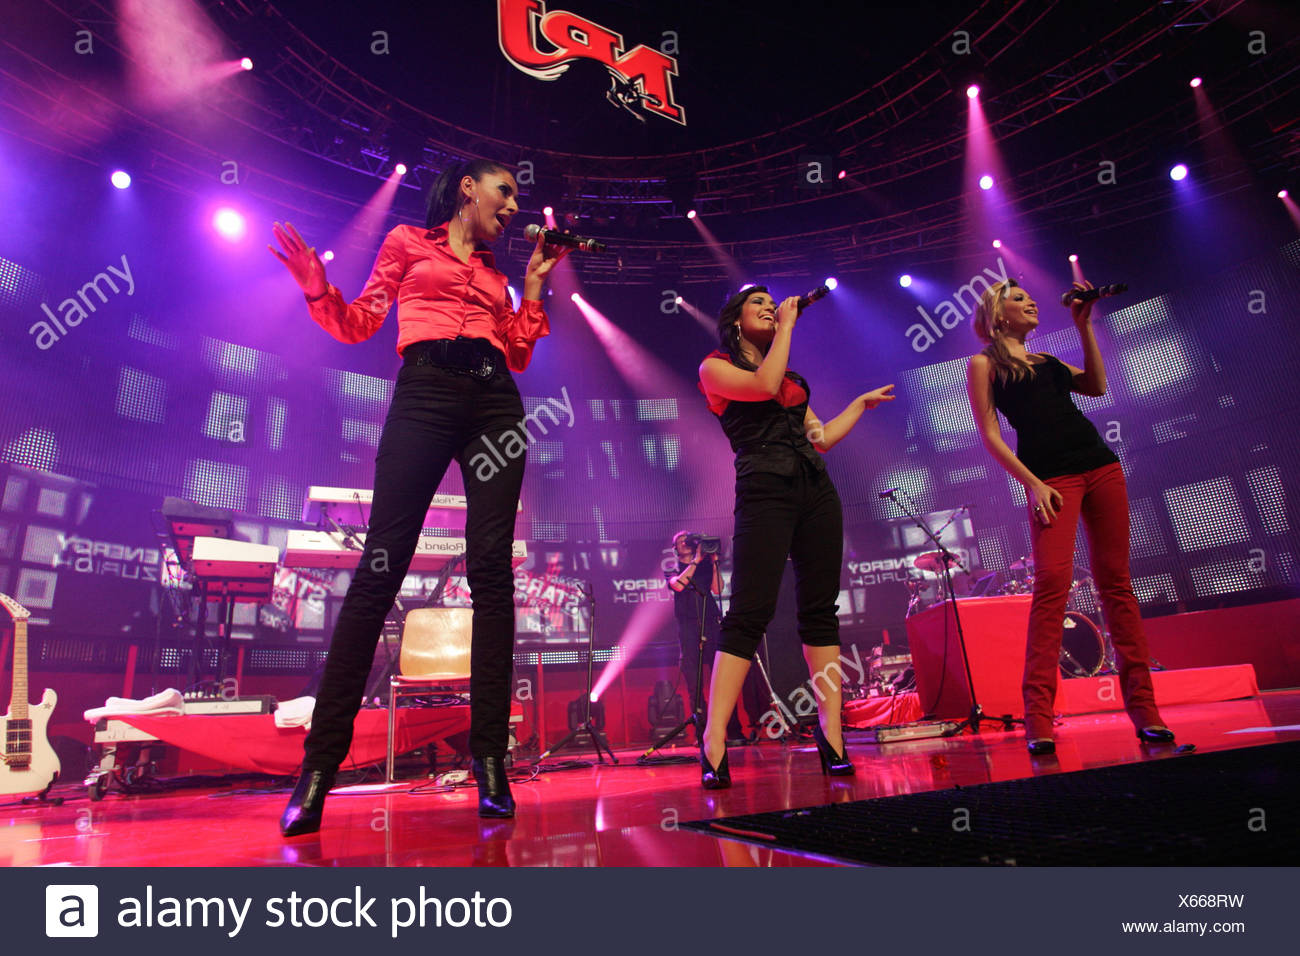 German girlgroup Monrose performing live at Energy Stars For Free at Hallenstadion Zurich, Switzerland - Stock Image